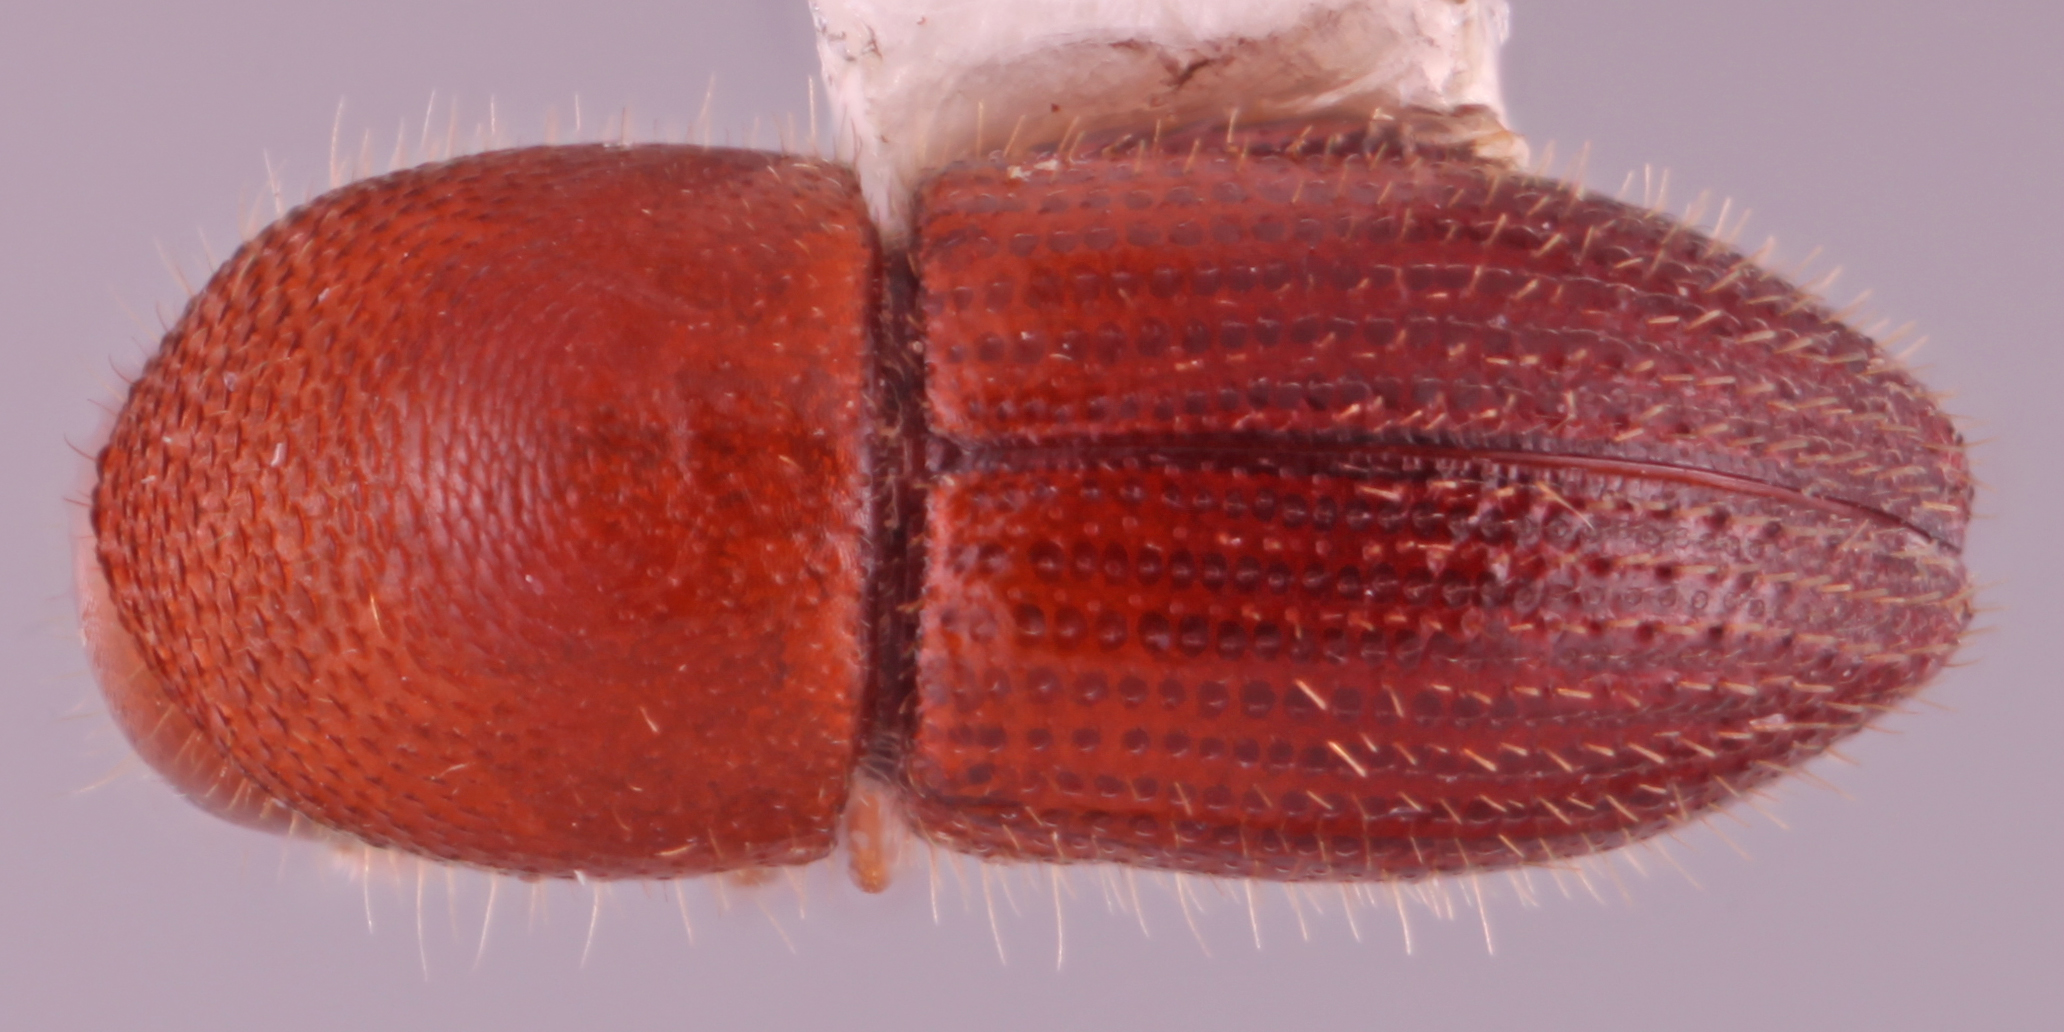 A photograph shows the Coptoborus bettysmithae, which is round, amber colored and dotted with little spines.